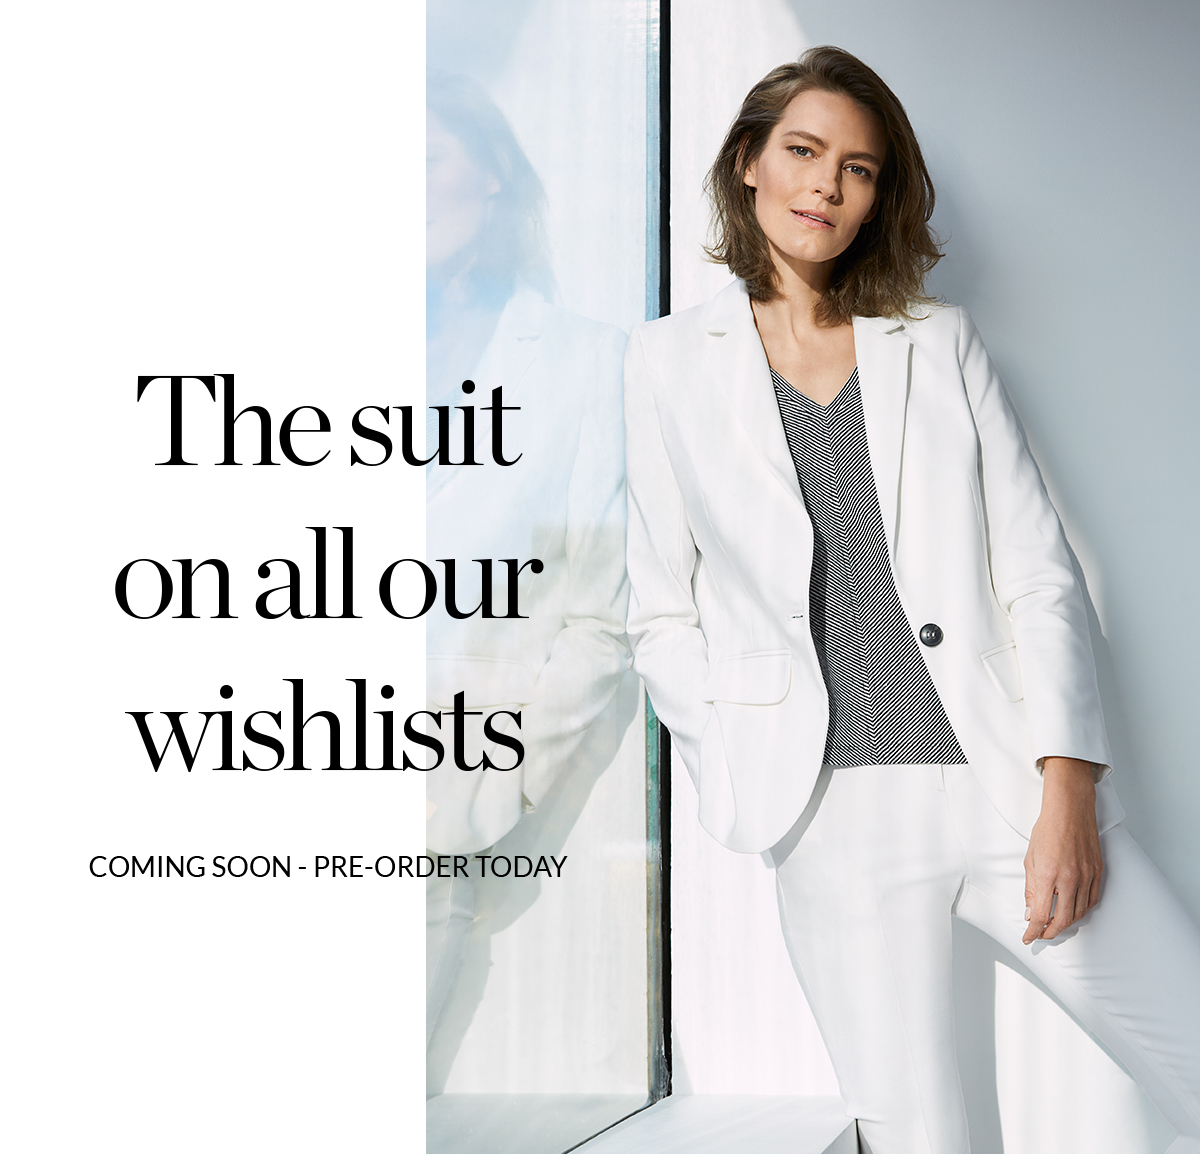 The suit on all our wishlists | Coming Soon - Pre-order Today | Ulrica Suit Trouser £89 | Ulrica Suit Jacket £99